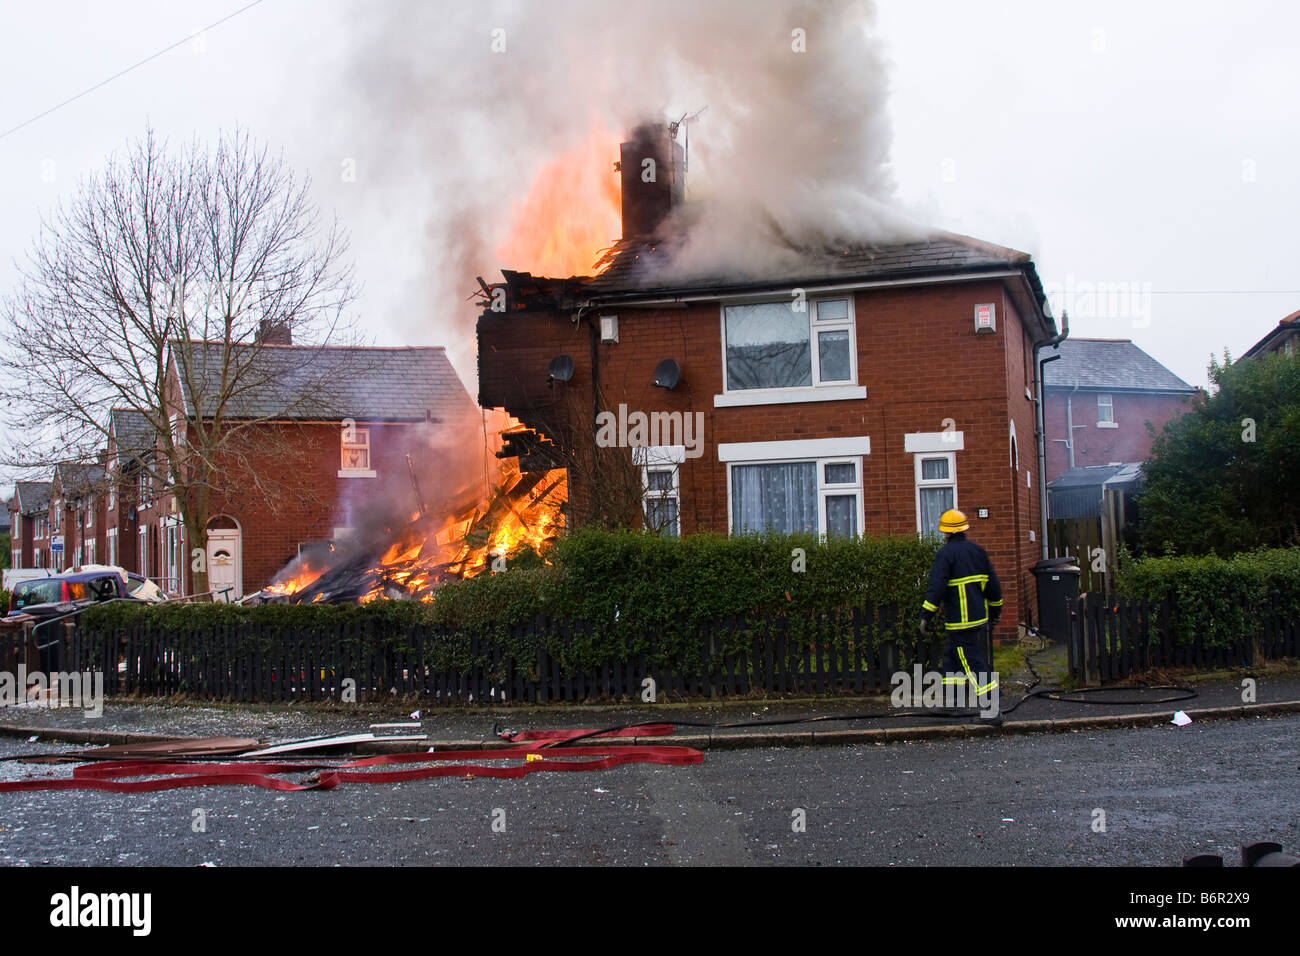 House On Fire Destroyed In A Gas Bottle Explosion